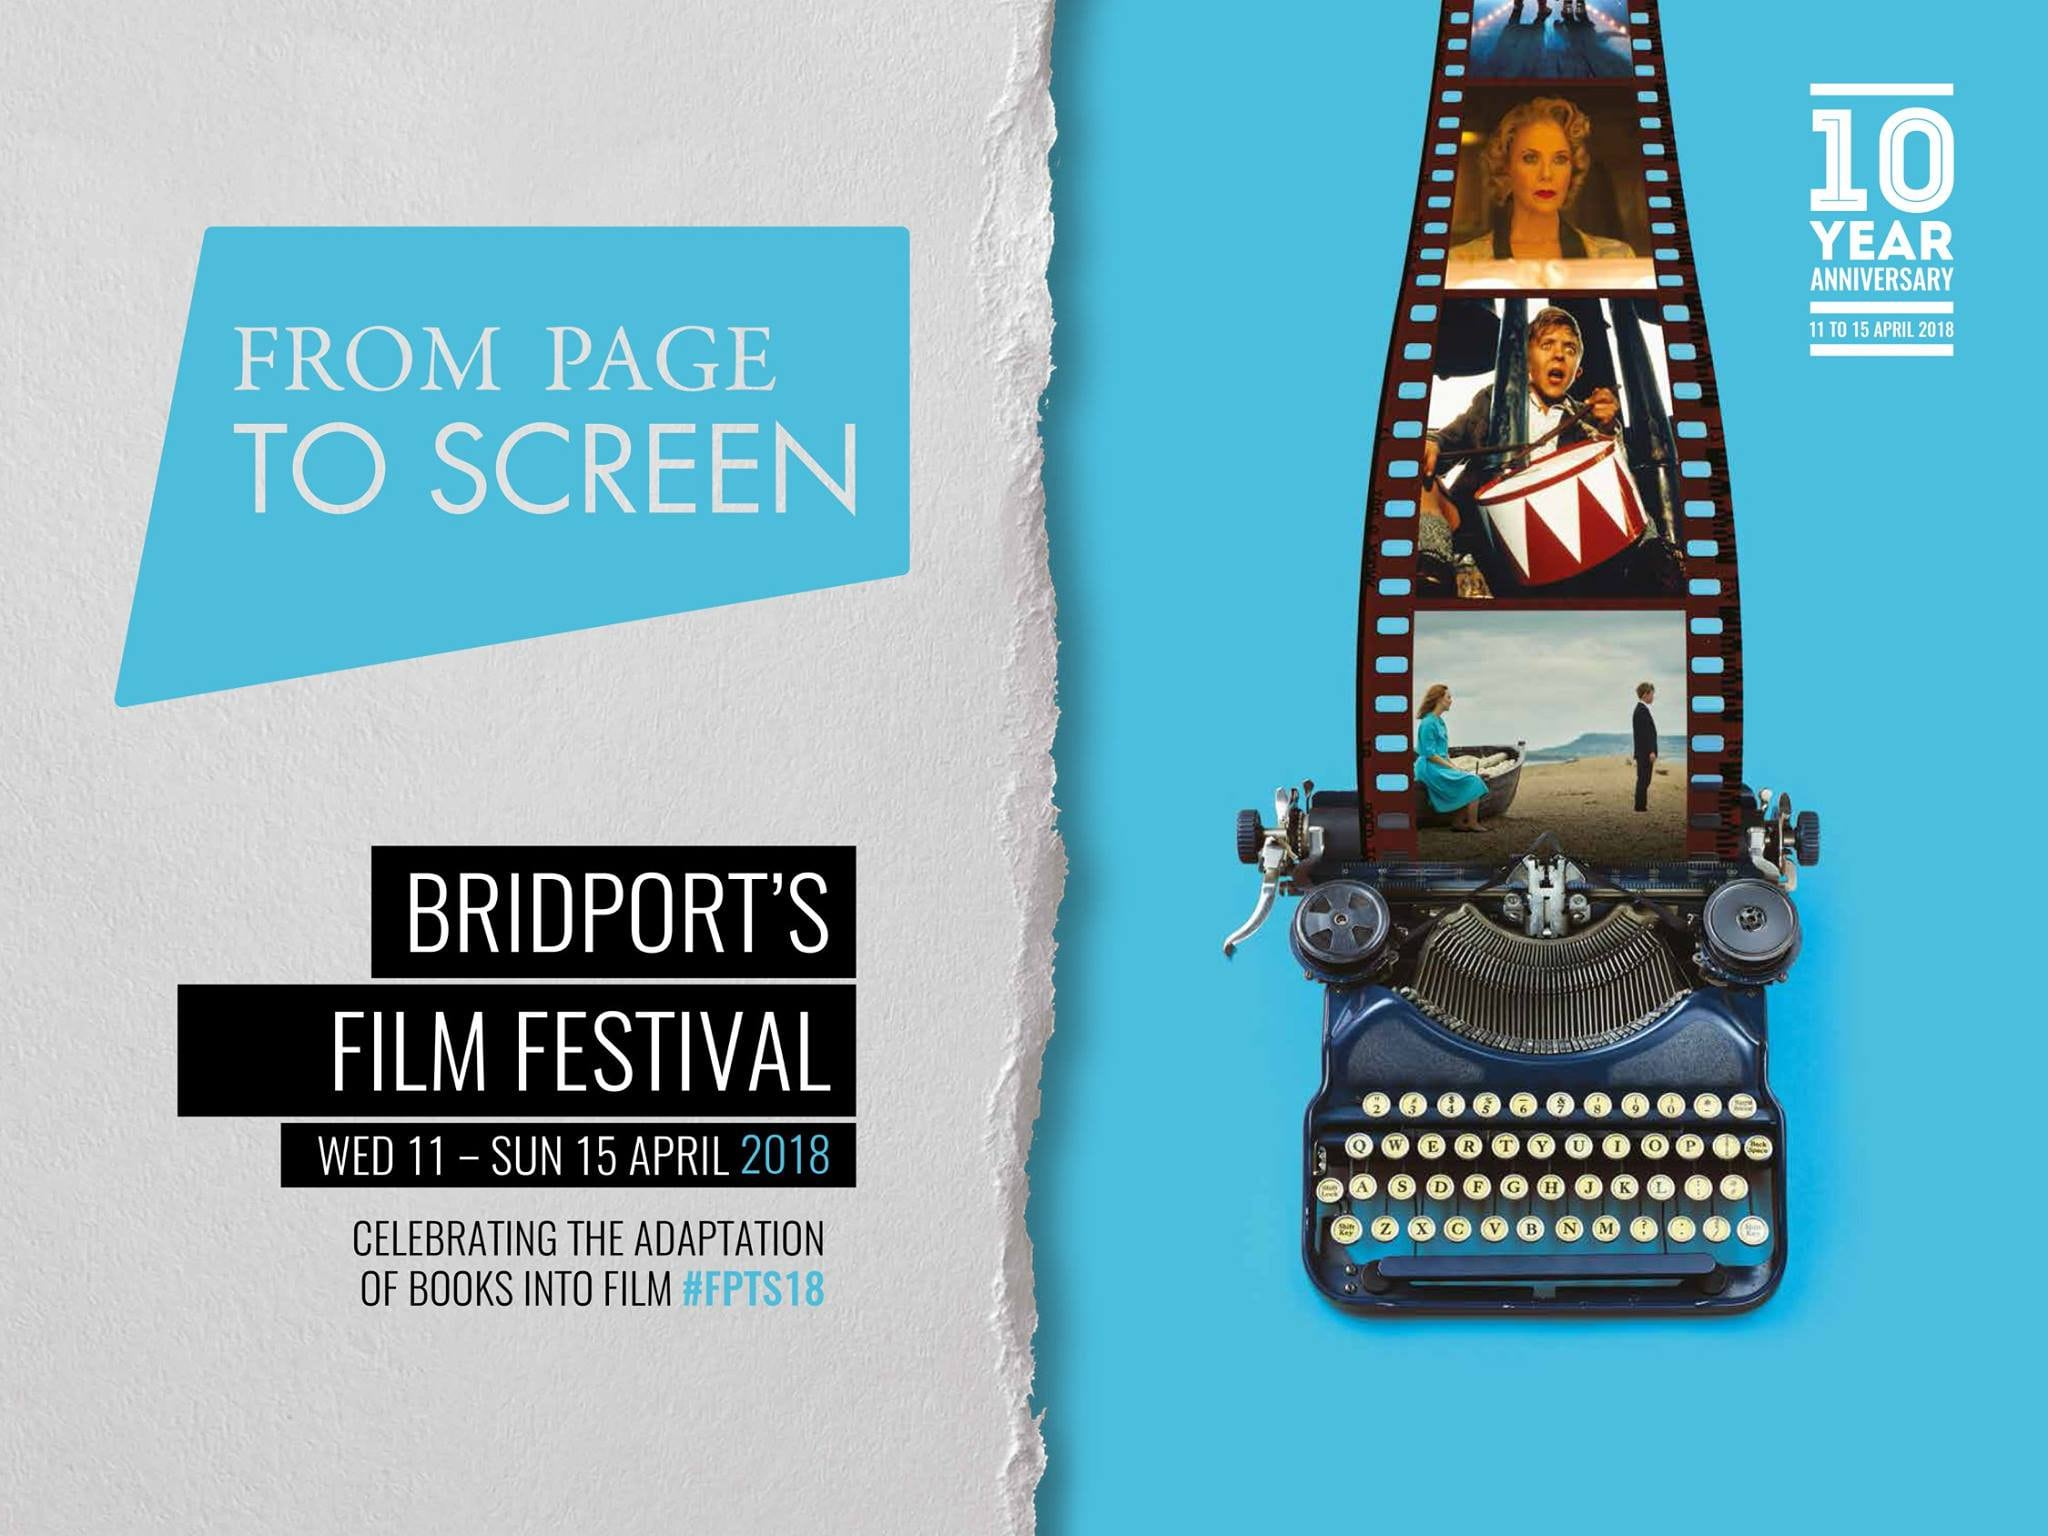 Bridport's Film Festival: From Page to Screen